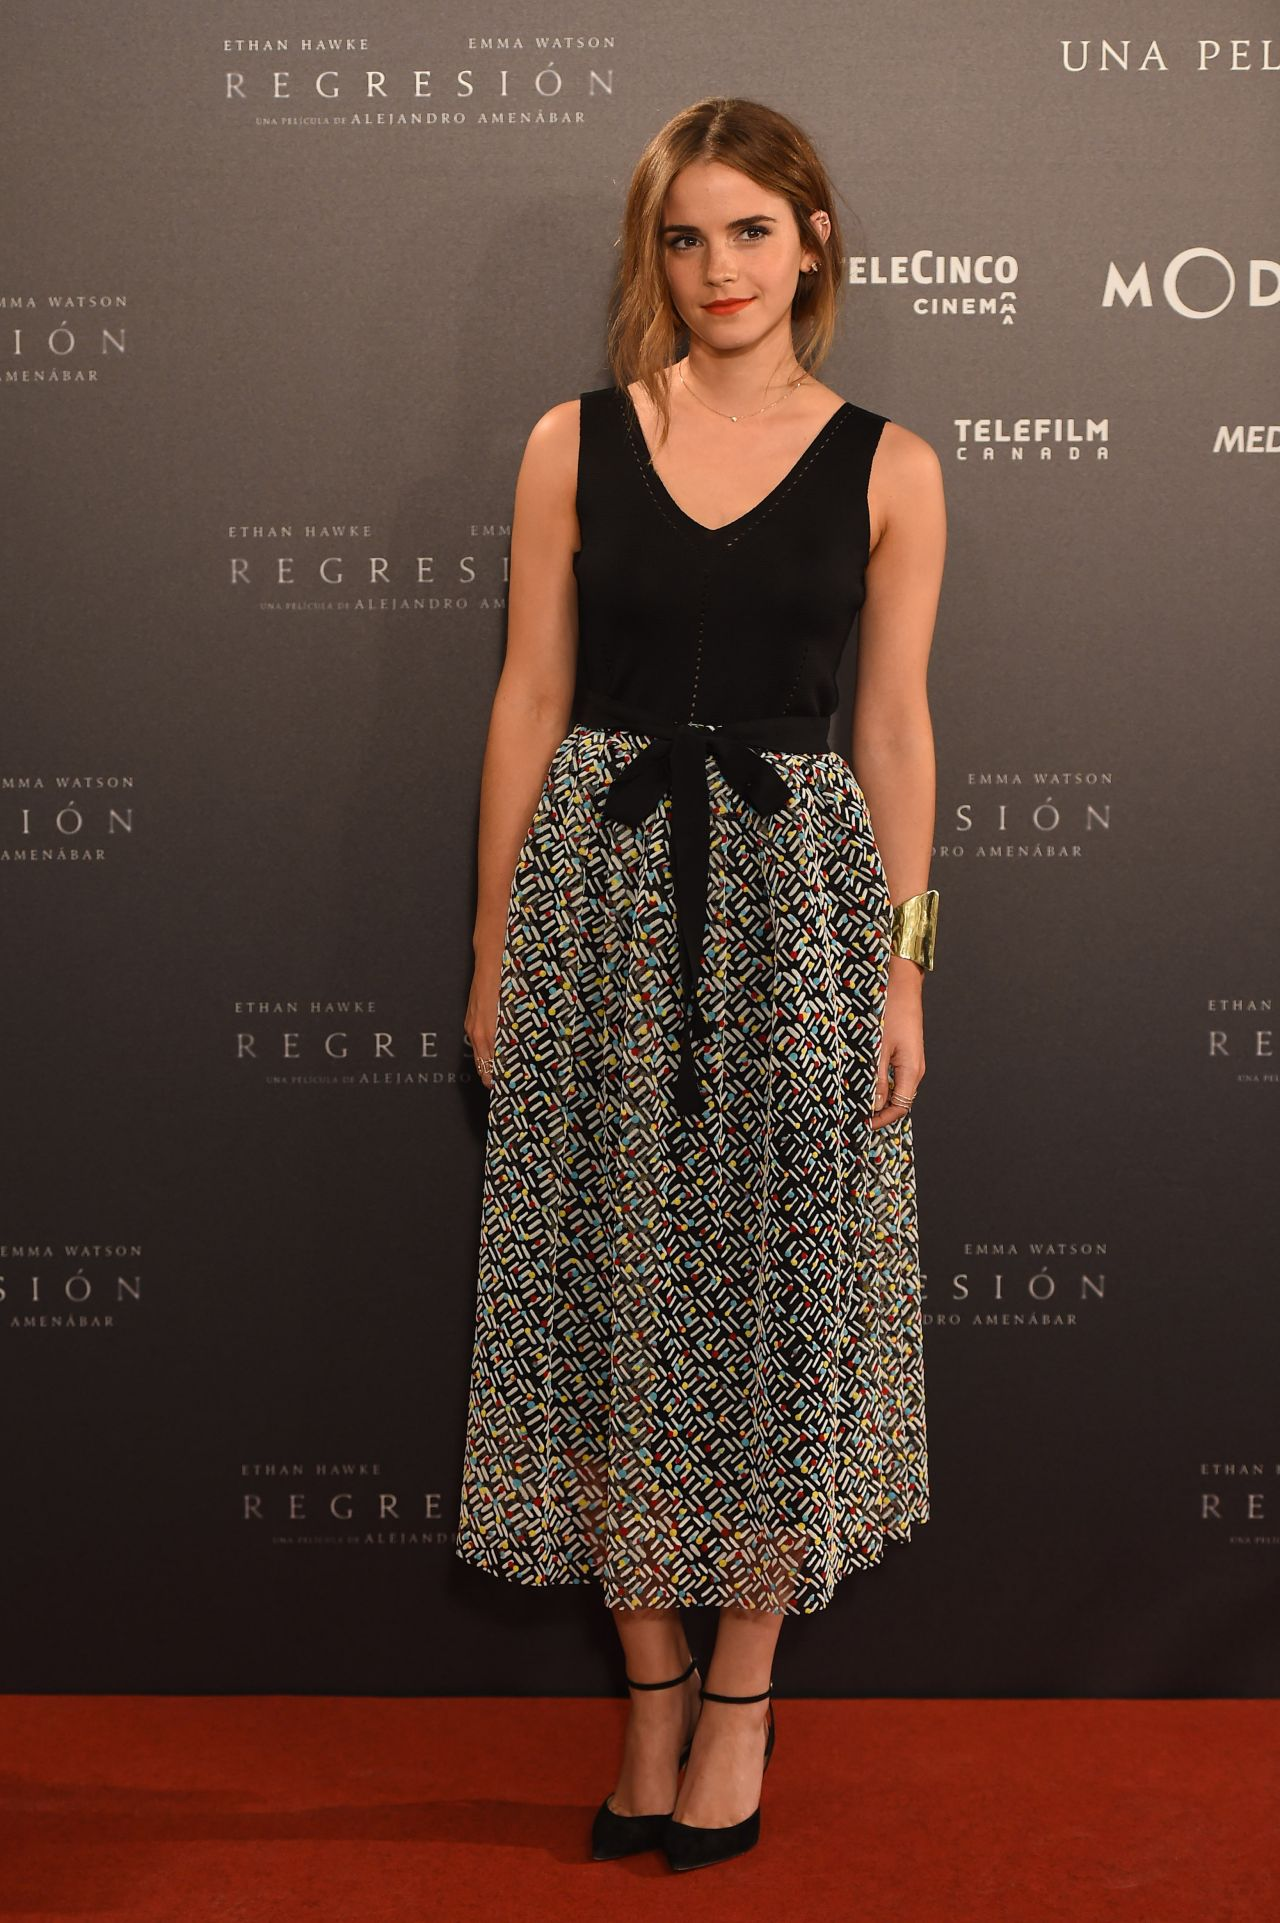 /emma-watson-in-christopher-kane-regression-madrid-photocall